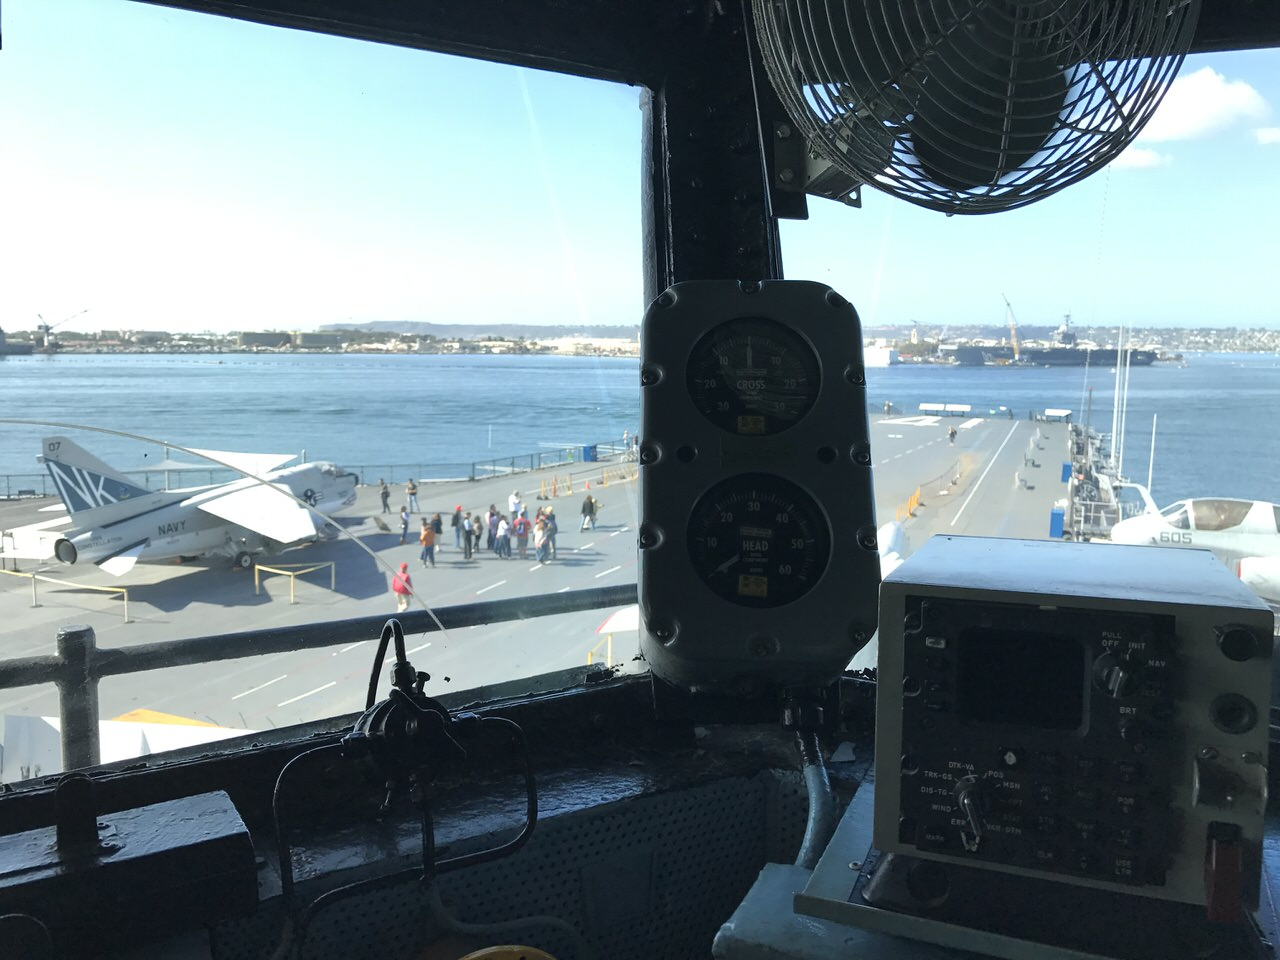 Uss midway museum 0582